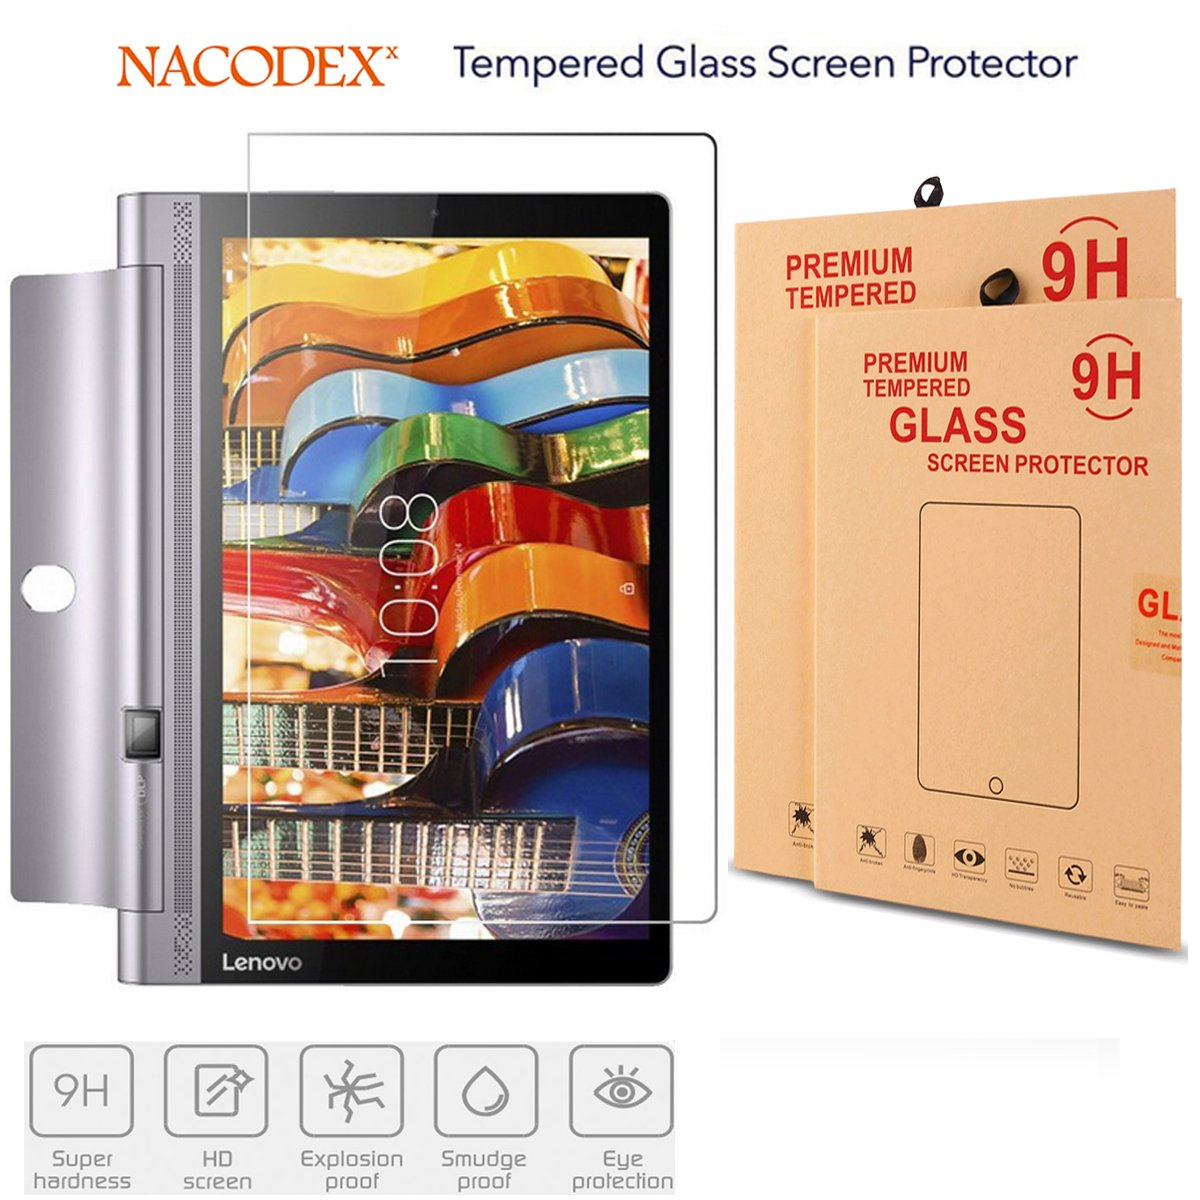 Tab 3 Pro Glass Screen Protector,for Lenovo Yoga Tab 3 Pro 10 inch Nacodex Tempered Glass Screen Protector (for Lenovo Yoga Tab 3 Pro 10 inch)